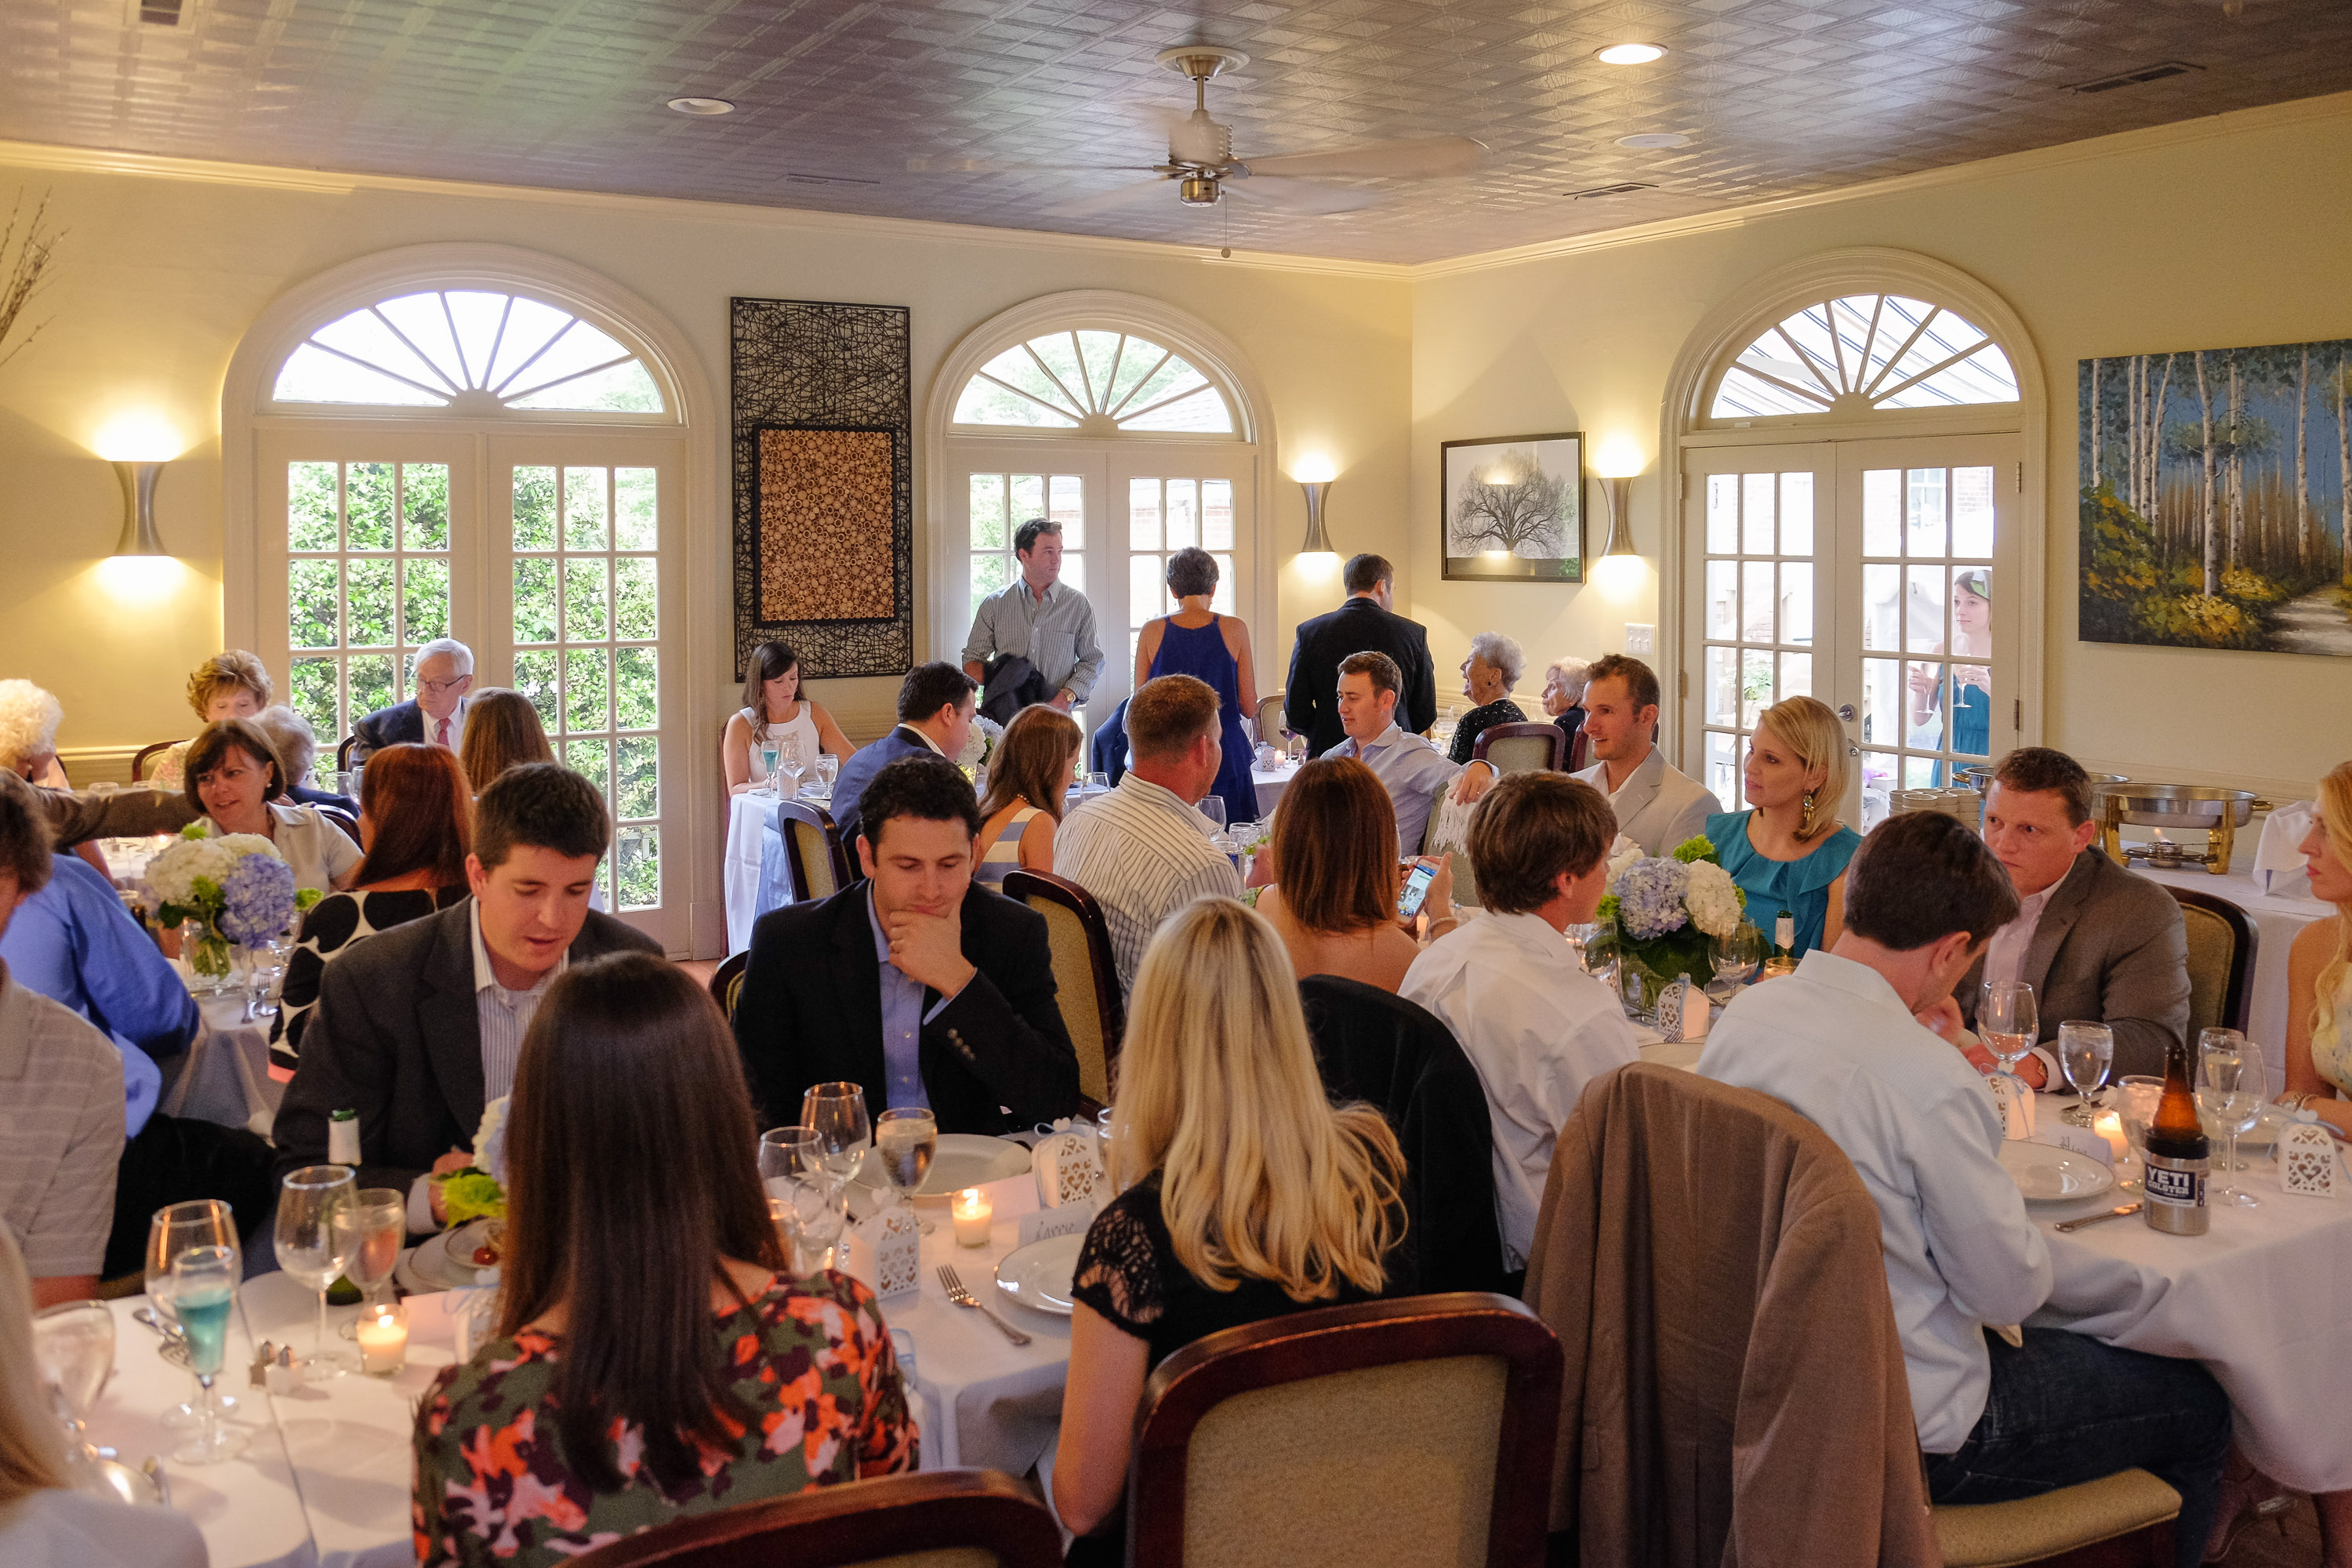 Edenton NC restaurants for specials occasions